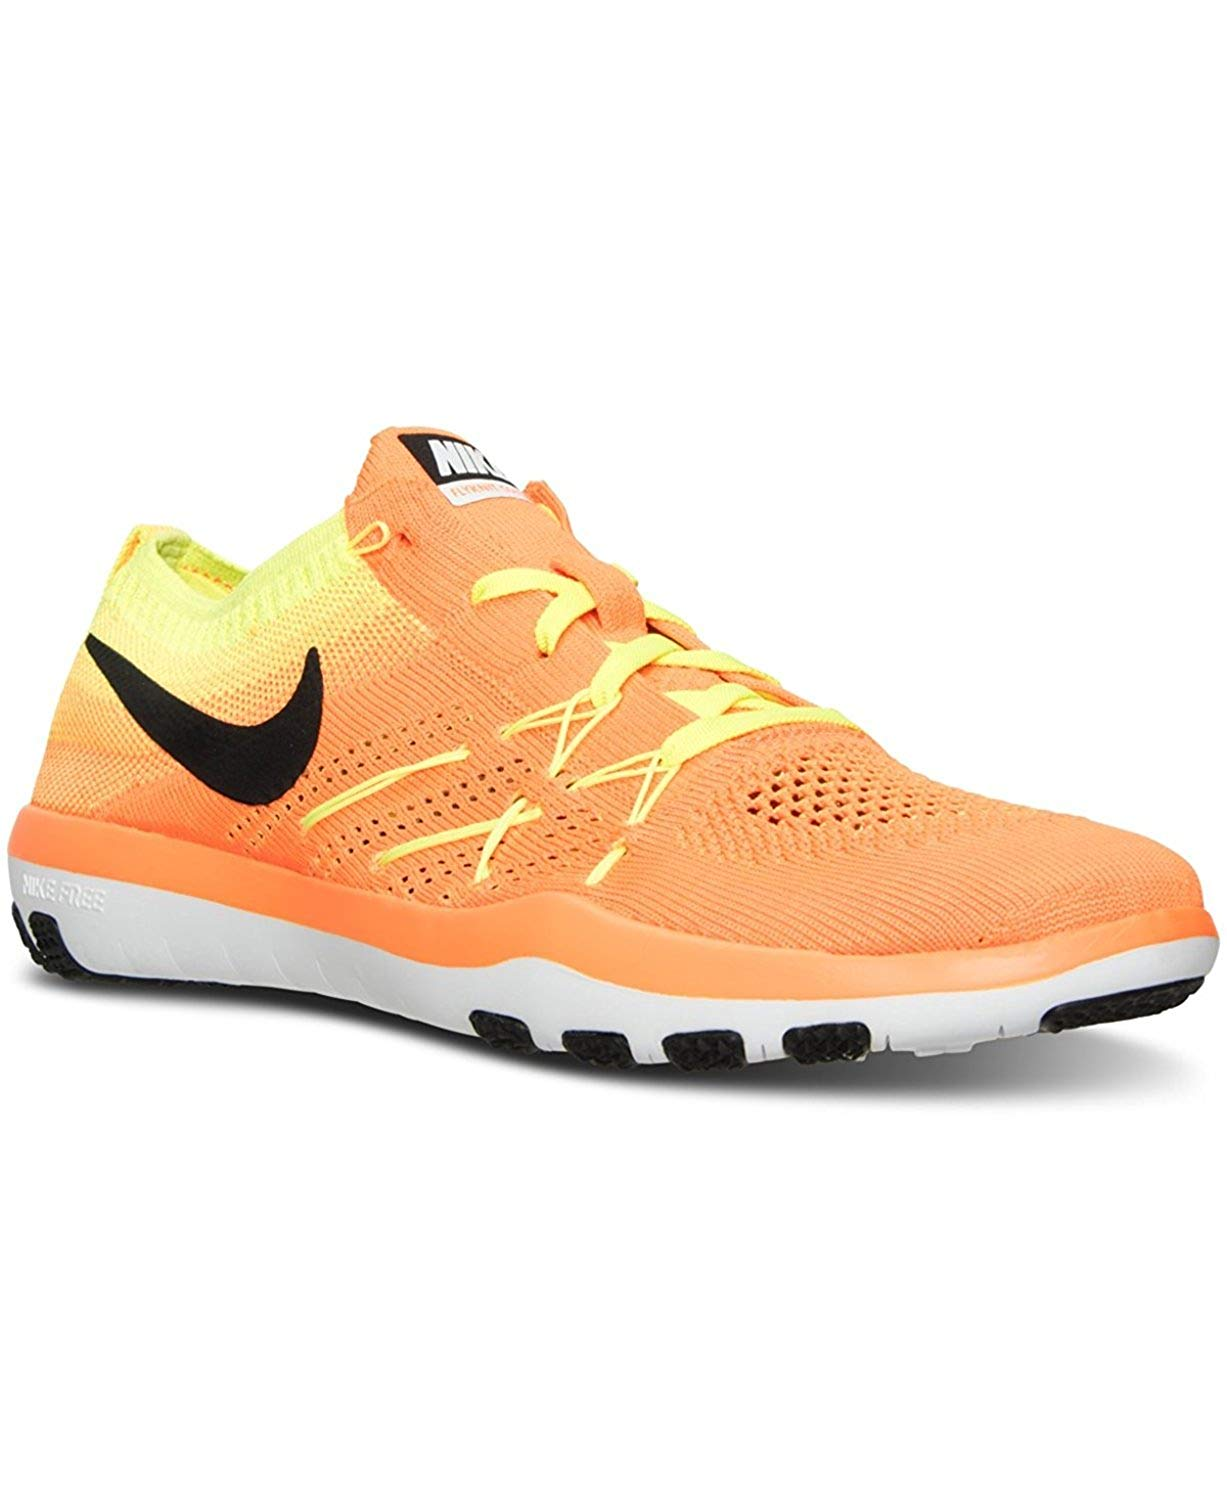 Nike Womens Free tr Focus Flyknit Low Top Lace Up Running Sneaker US